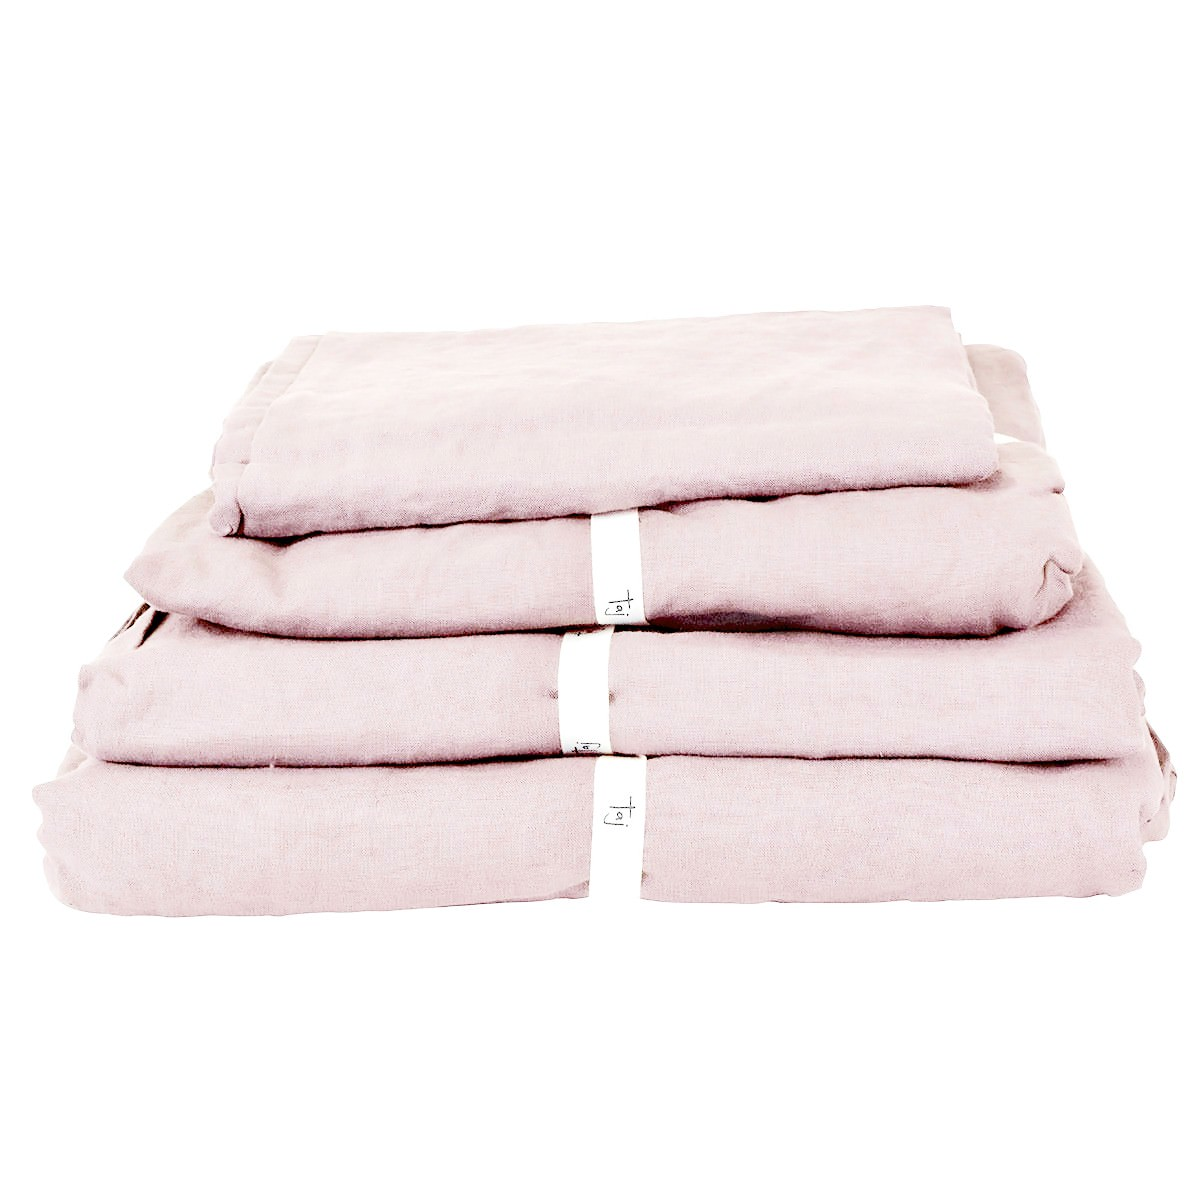 Taj French Linen Flat Sheet, King, Blush